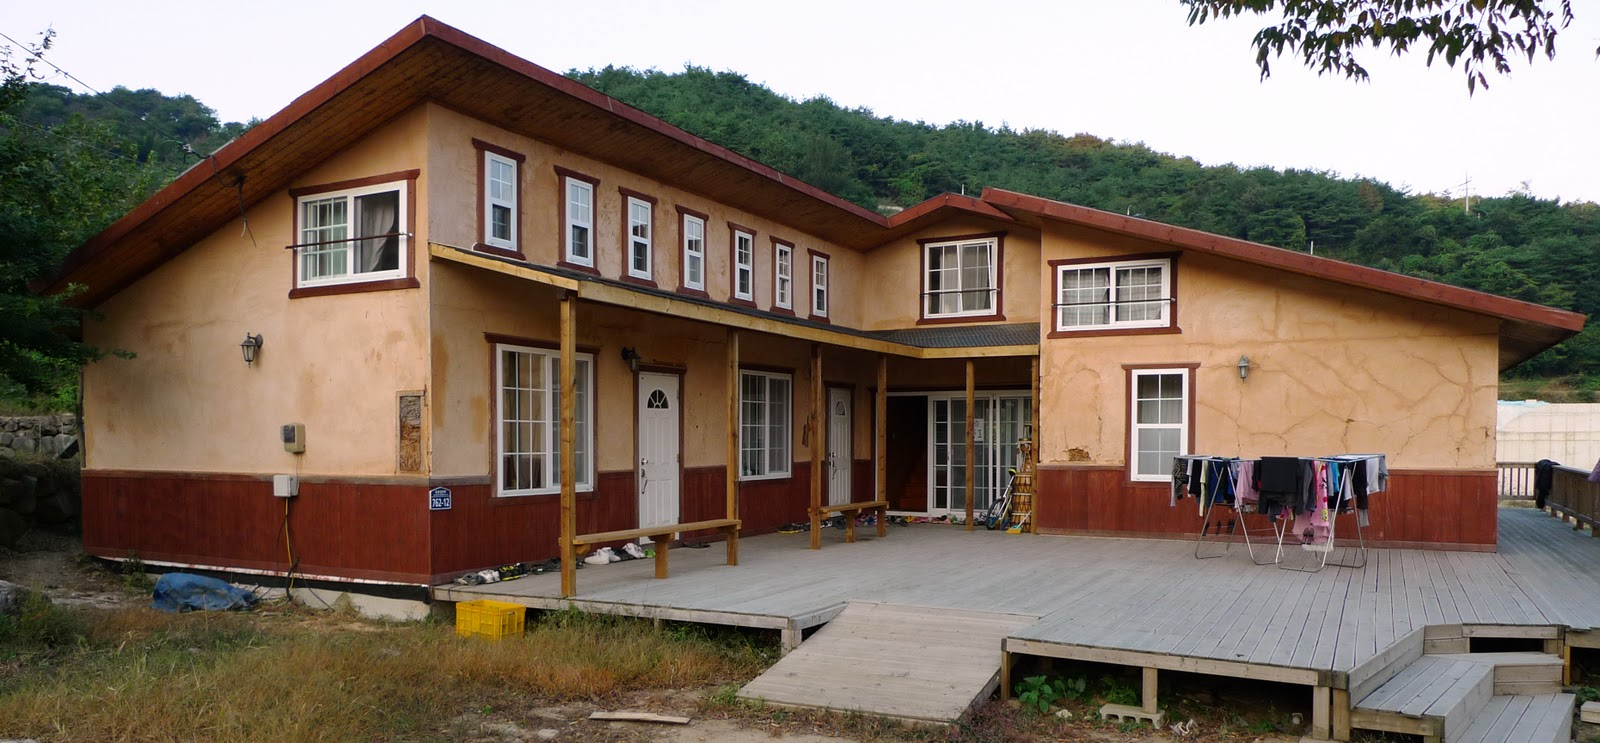 Sancheong-gun South Korea  City pictures : ... ベイルハウス Straw Bale Homes in Sancheong, South Korea